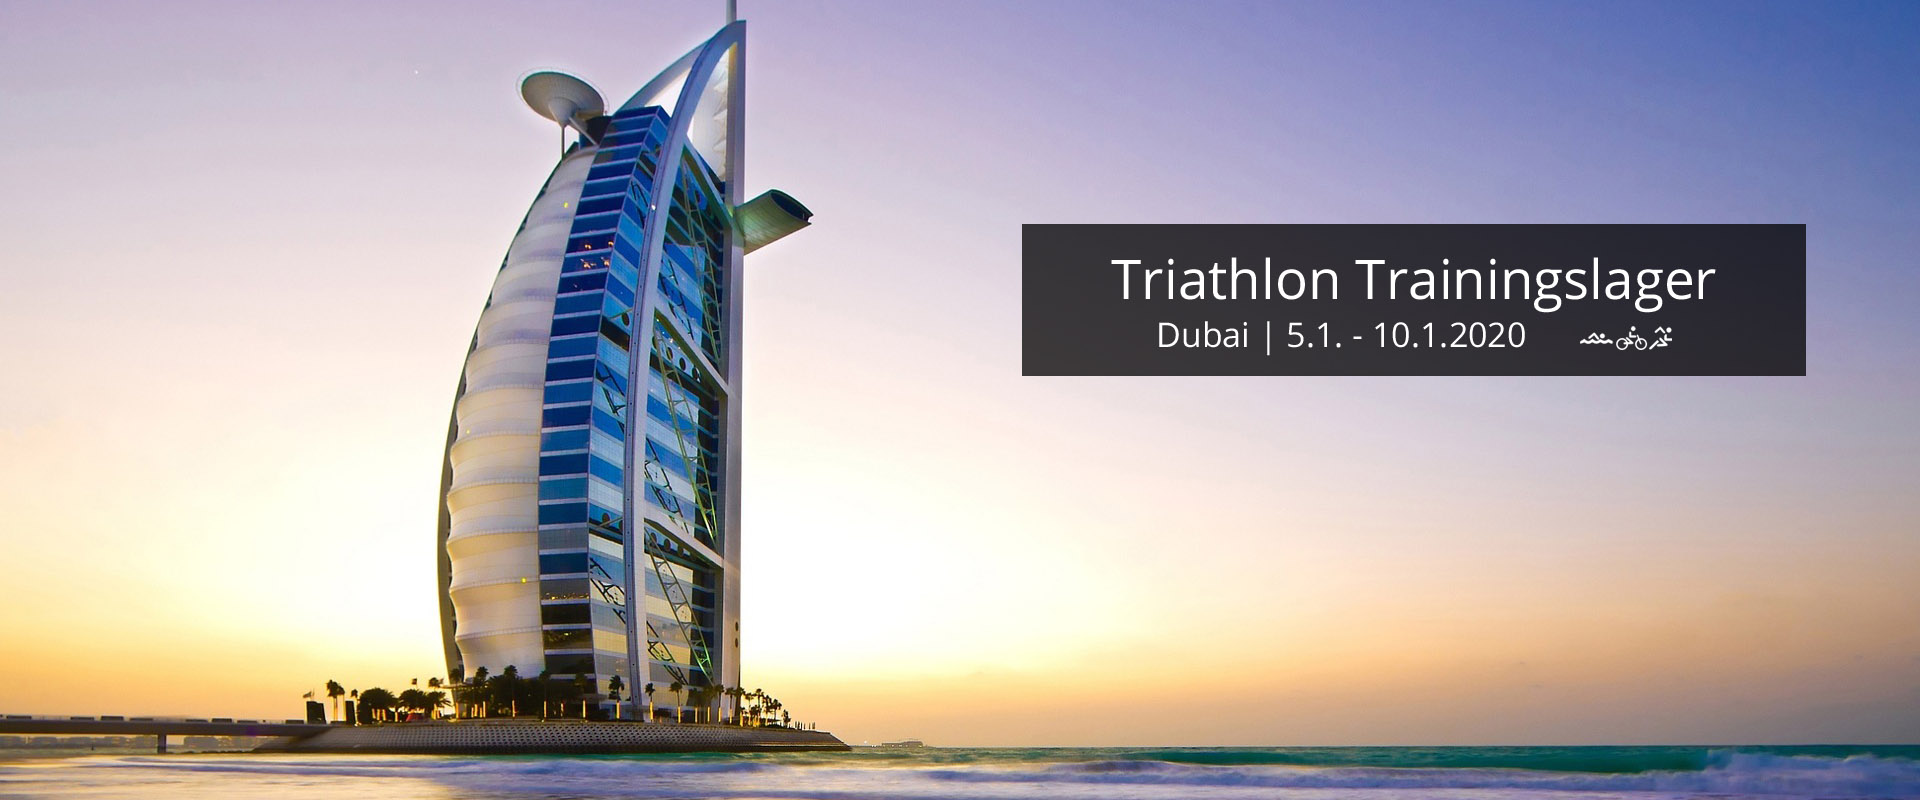 Triathlon Trainingslager Dubai 2020